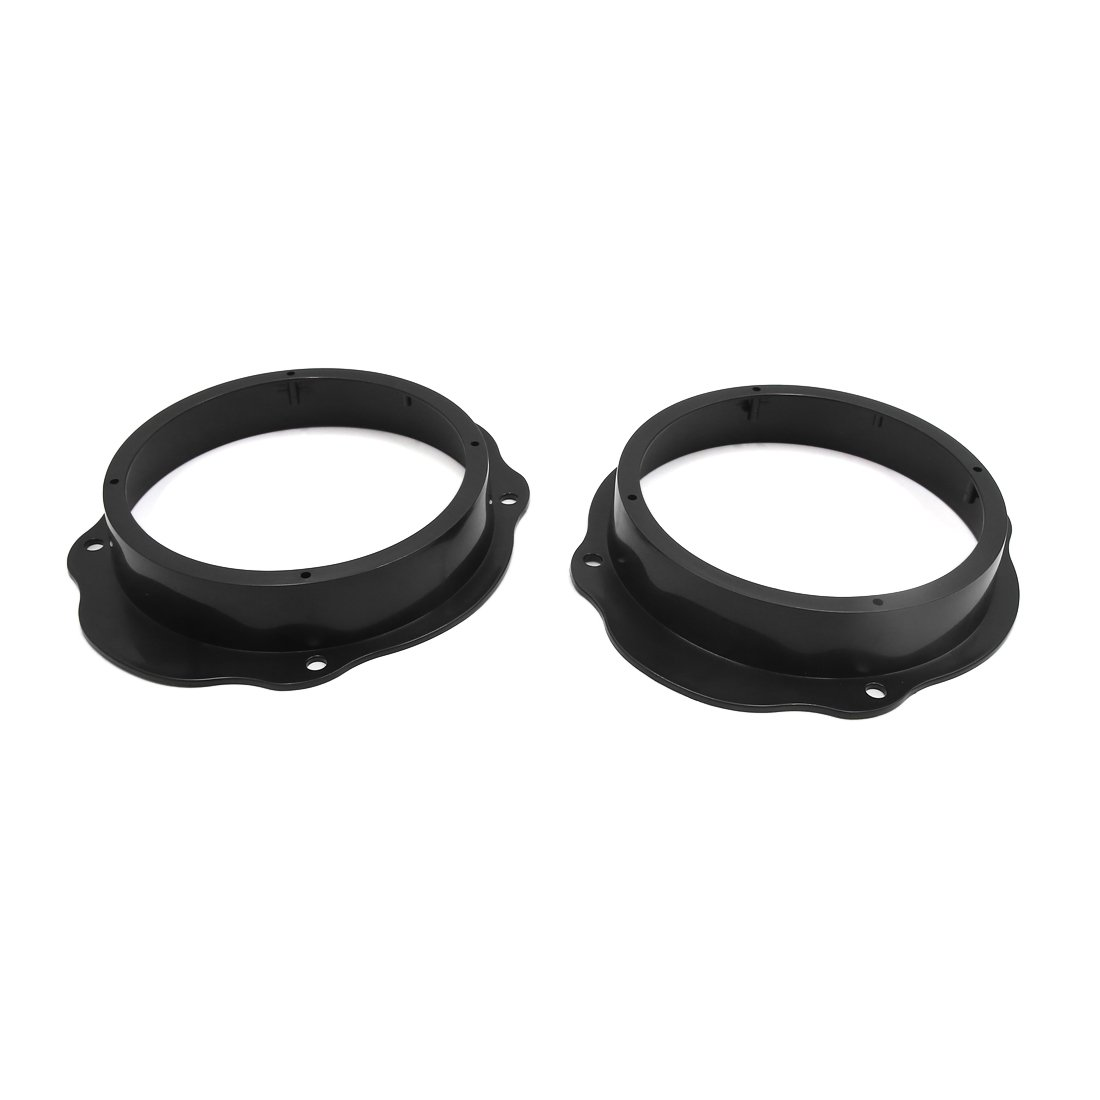 uxcell 2pcs Black 6.5'' Car Stereo Audio Speaker Mounting Spacer Adaptor Rings for Ford